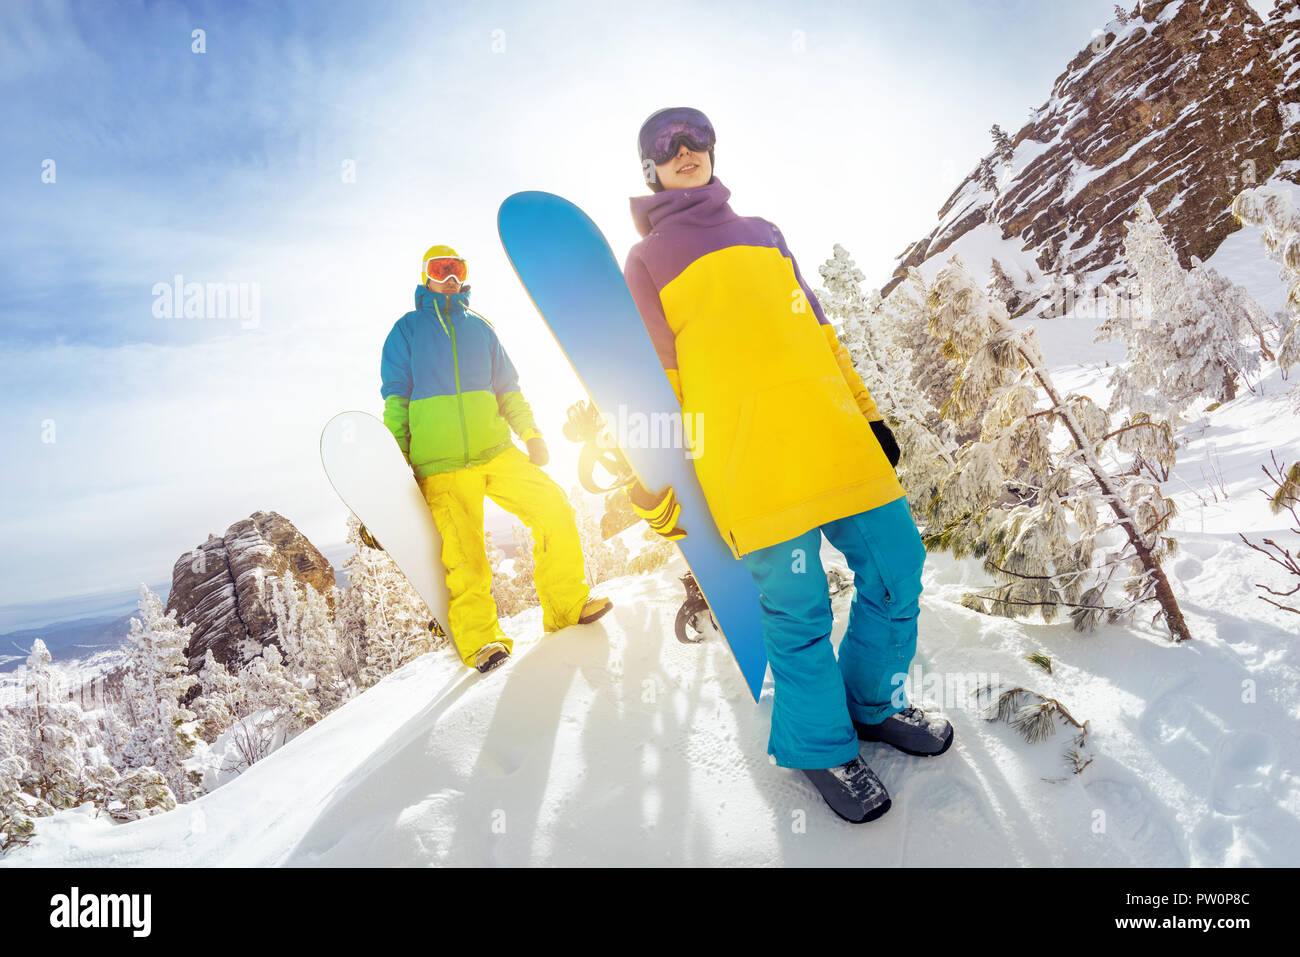 Two snowboarders male and female stands at offpiste ski slope with snowboards in hands - Stock Image